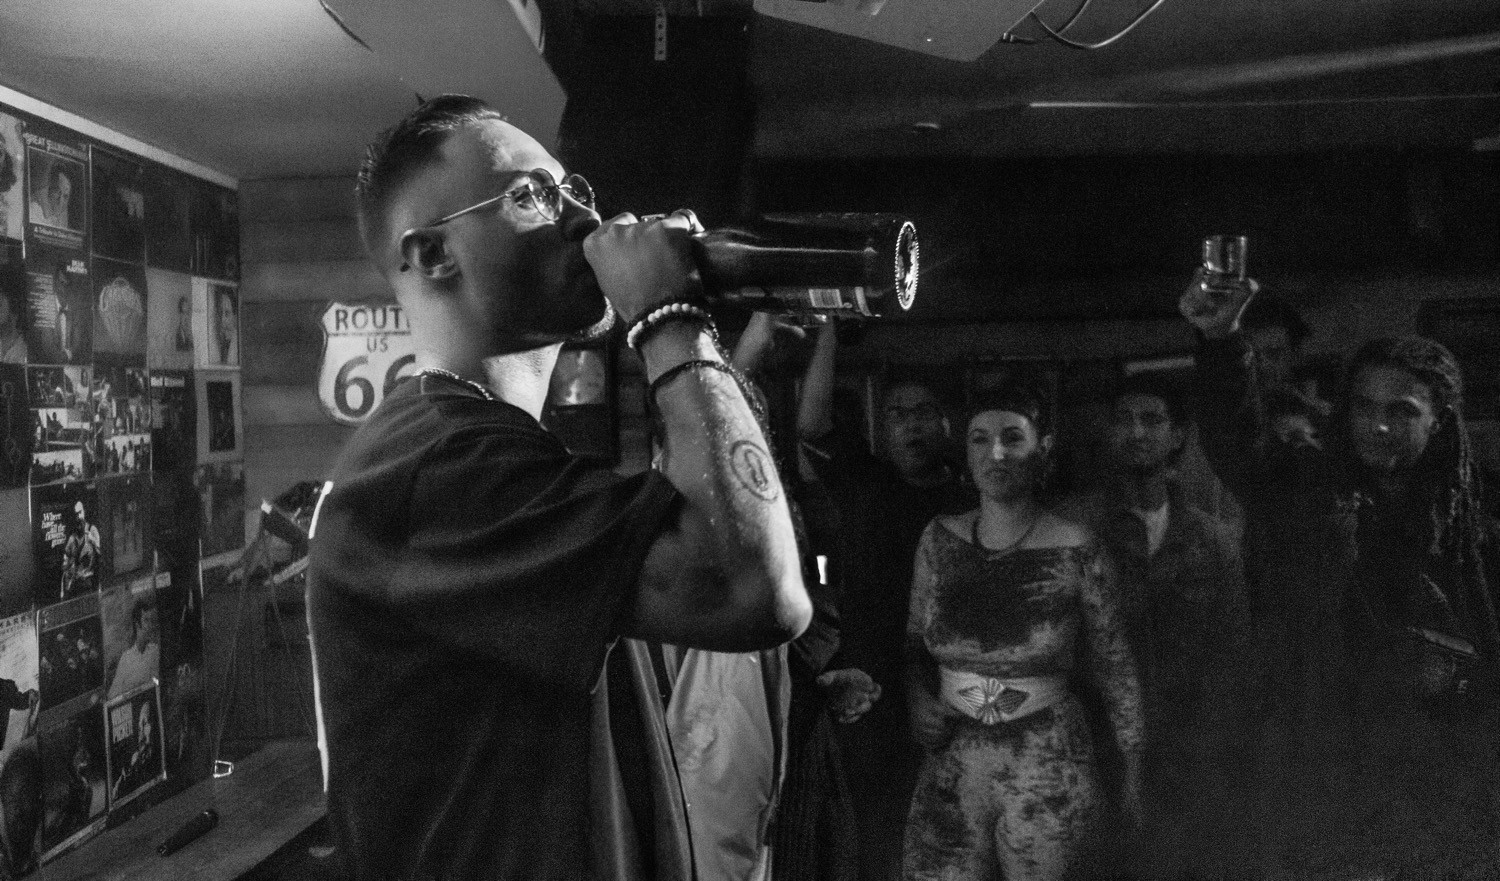 Koncept drinking Champagne in London, UK!